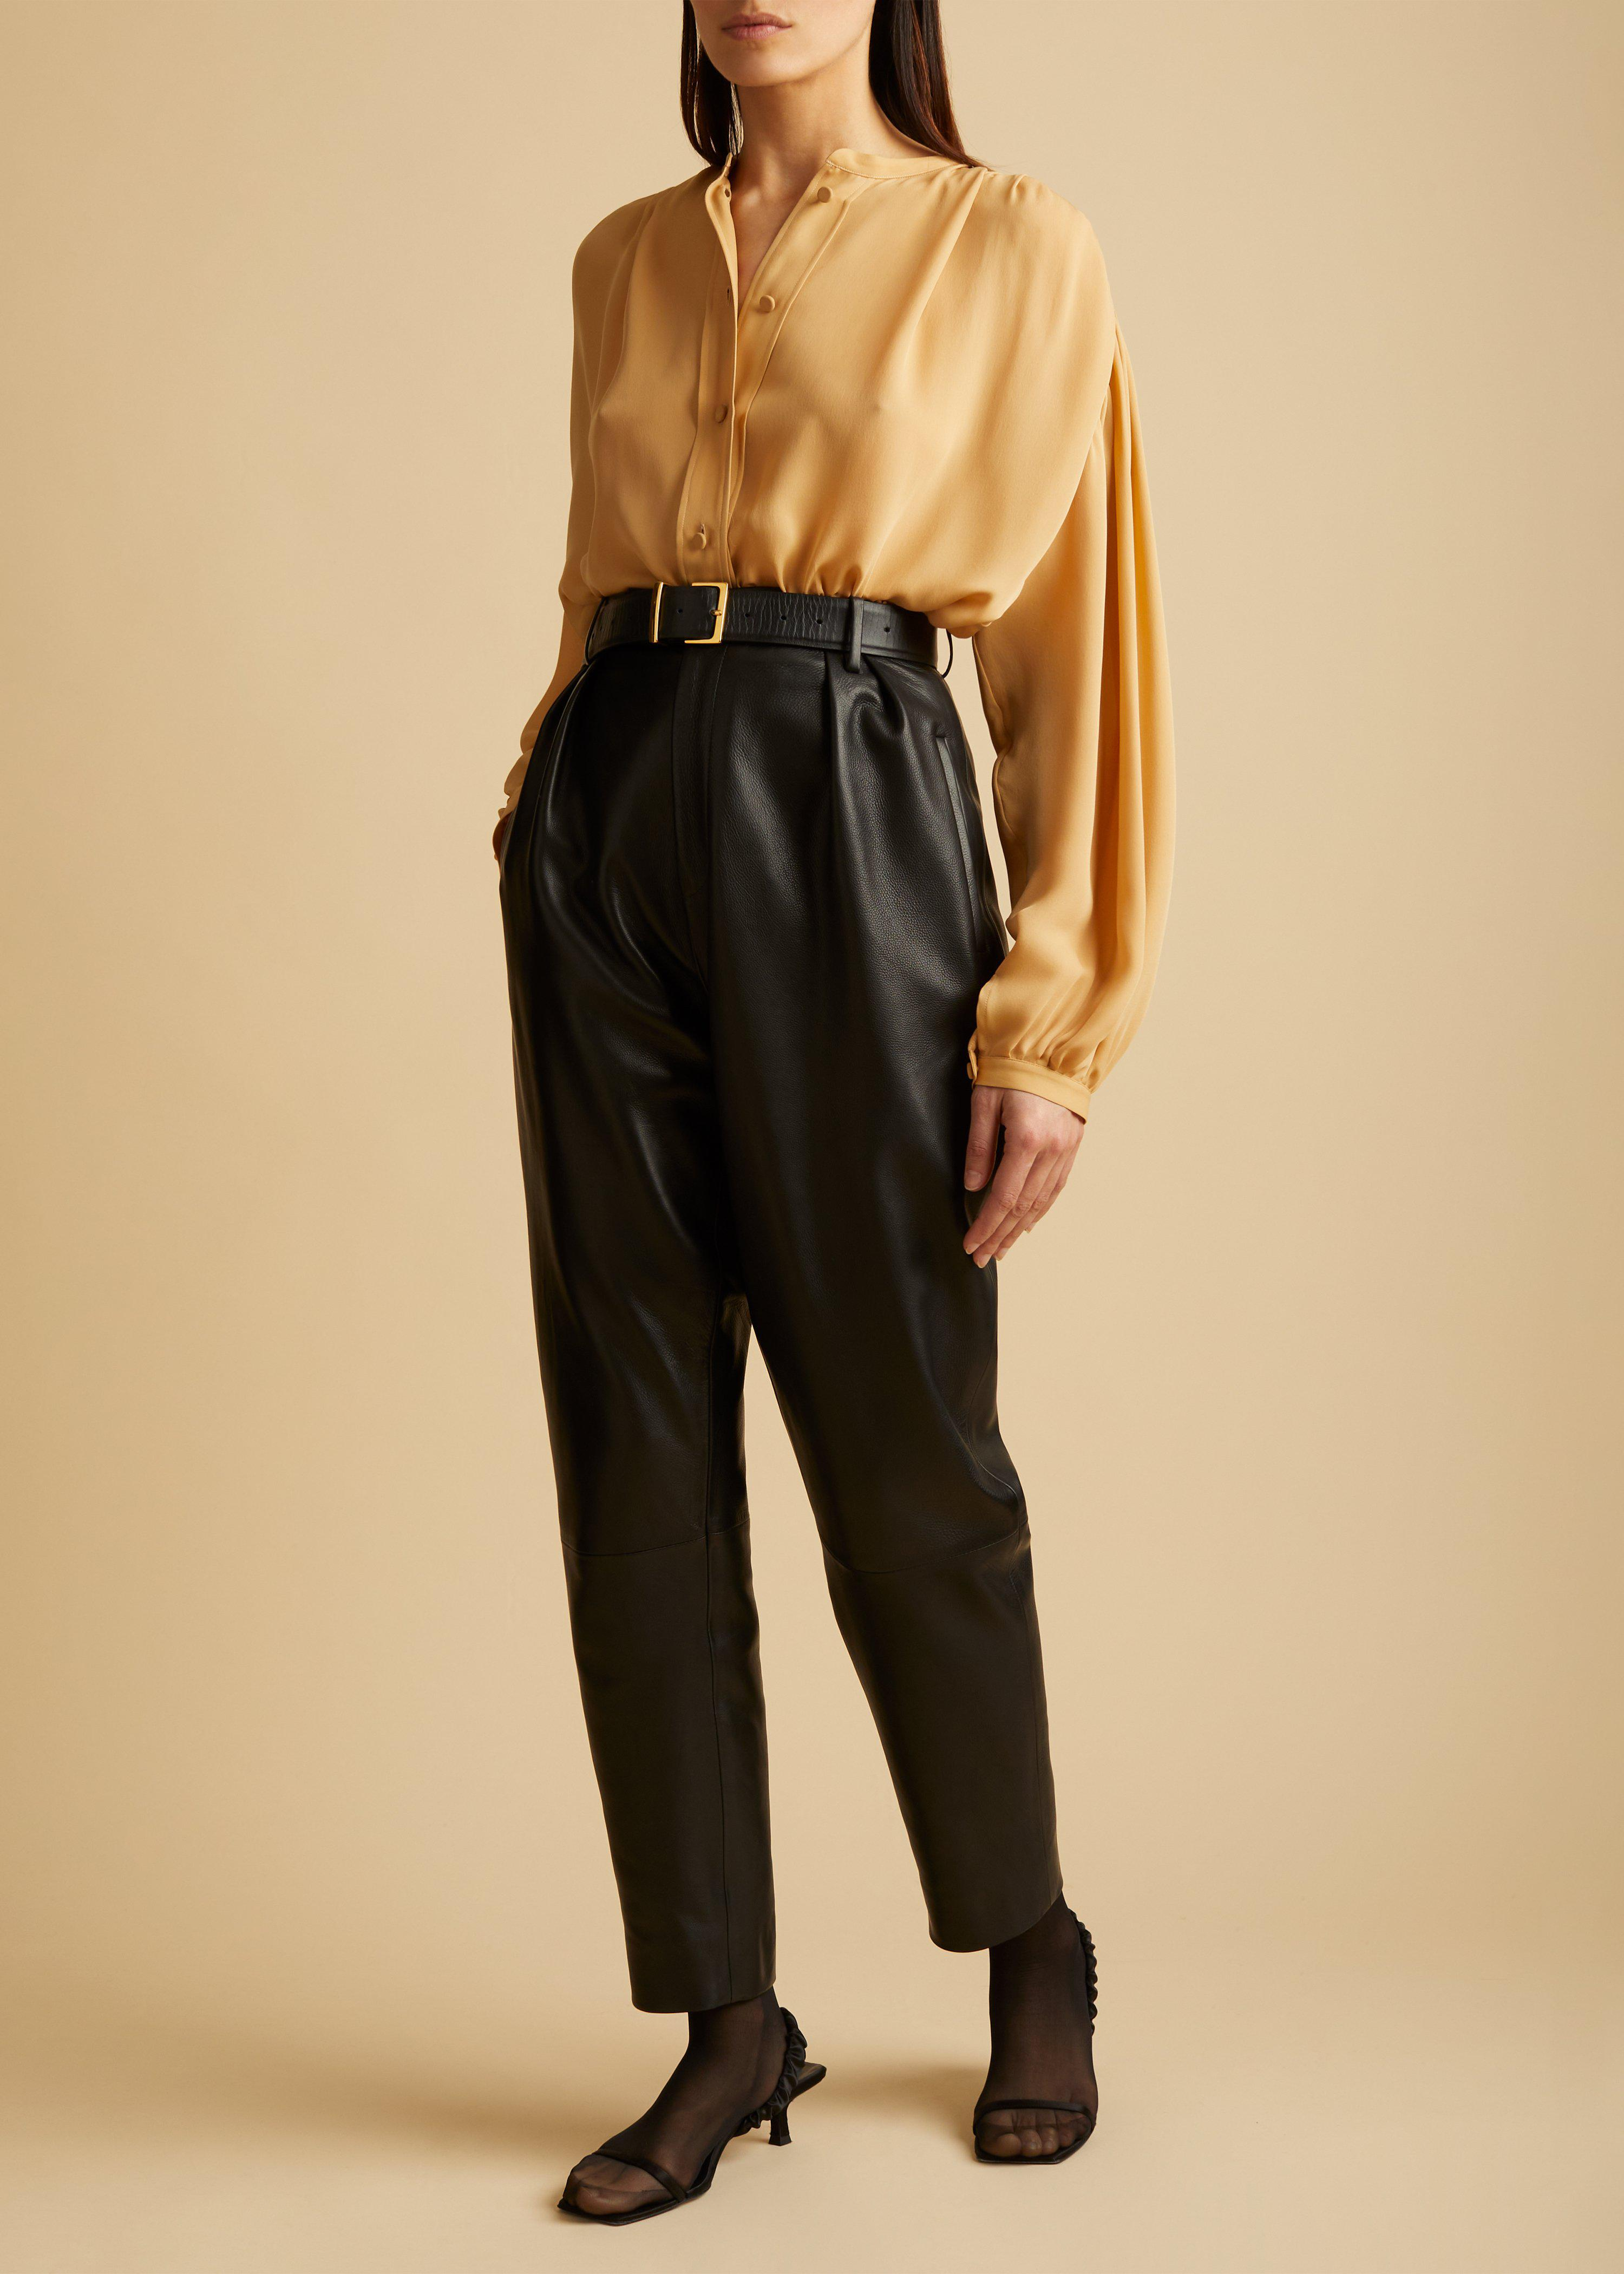 The Magdeline Pant in Black Leather